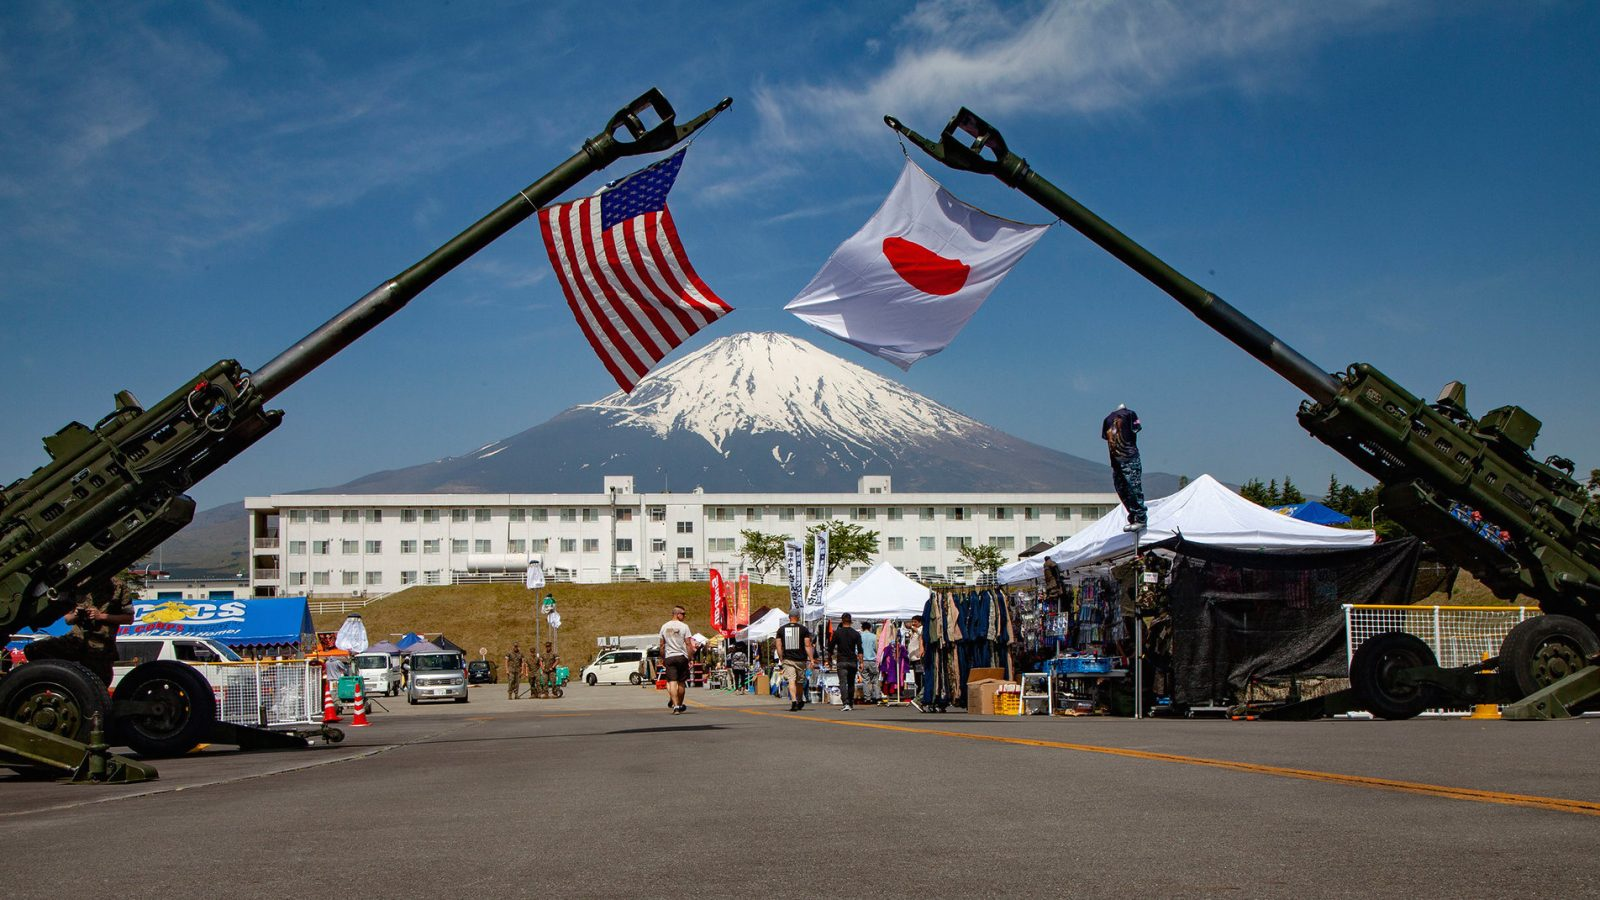 Two artillery weapons hoist the Japanese and U.S. flags with Mount Fuji in the background